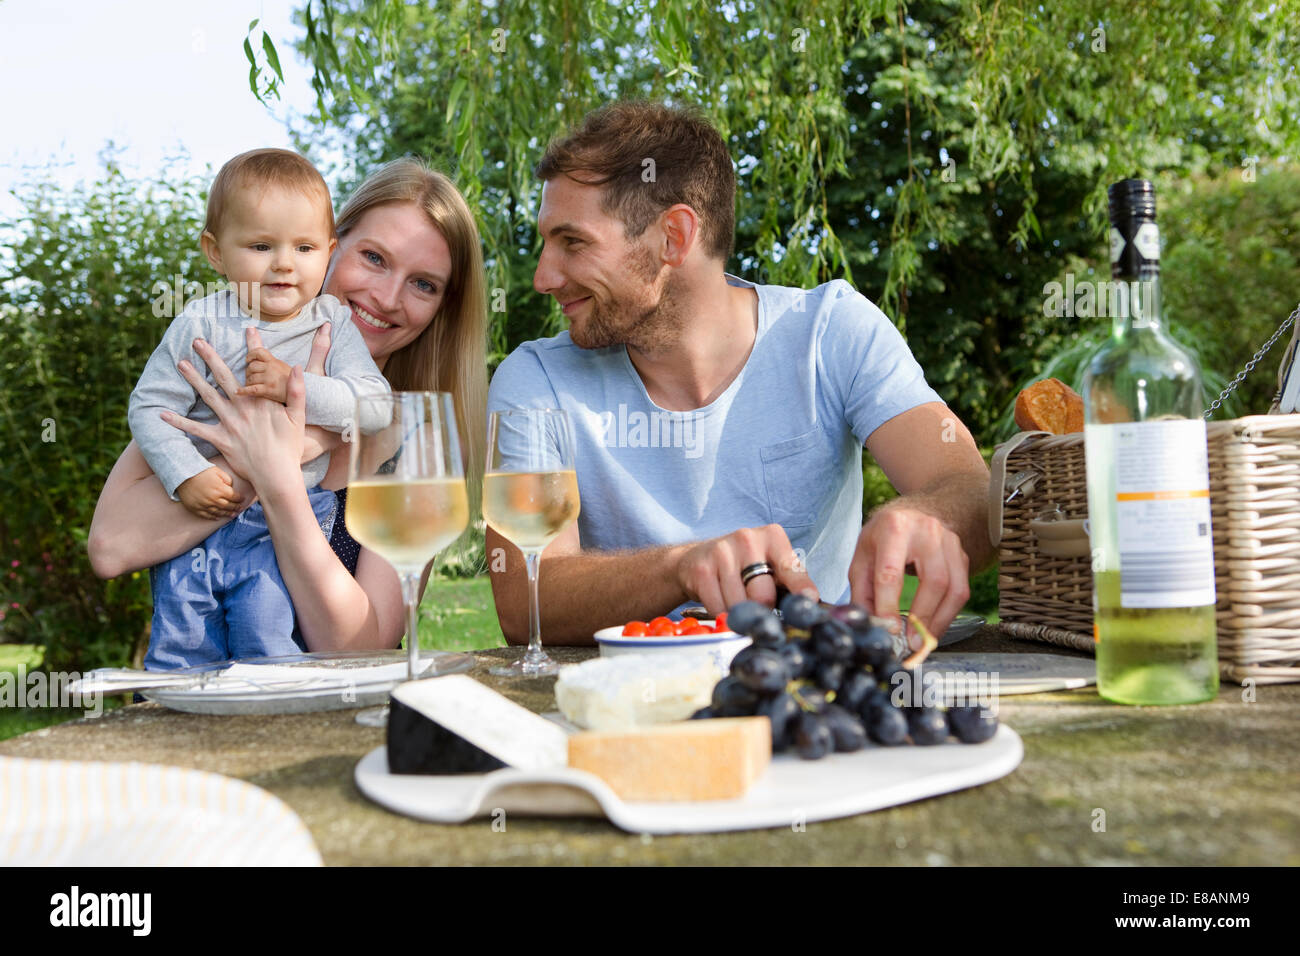 Mid adult couple and baby daughter sitting at picnic table in garden - Stock Image